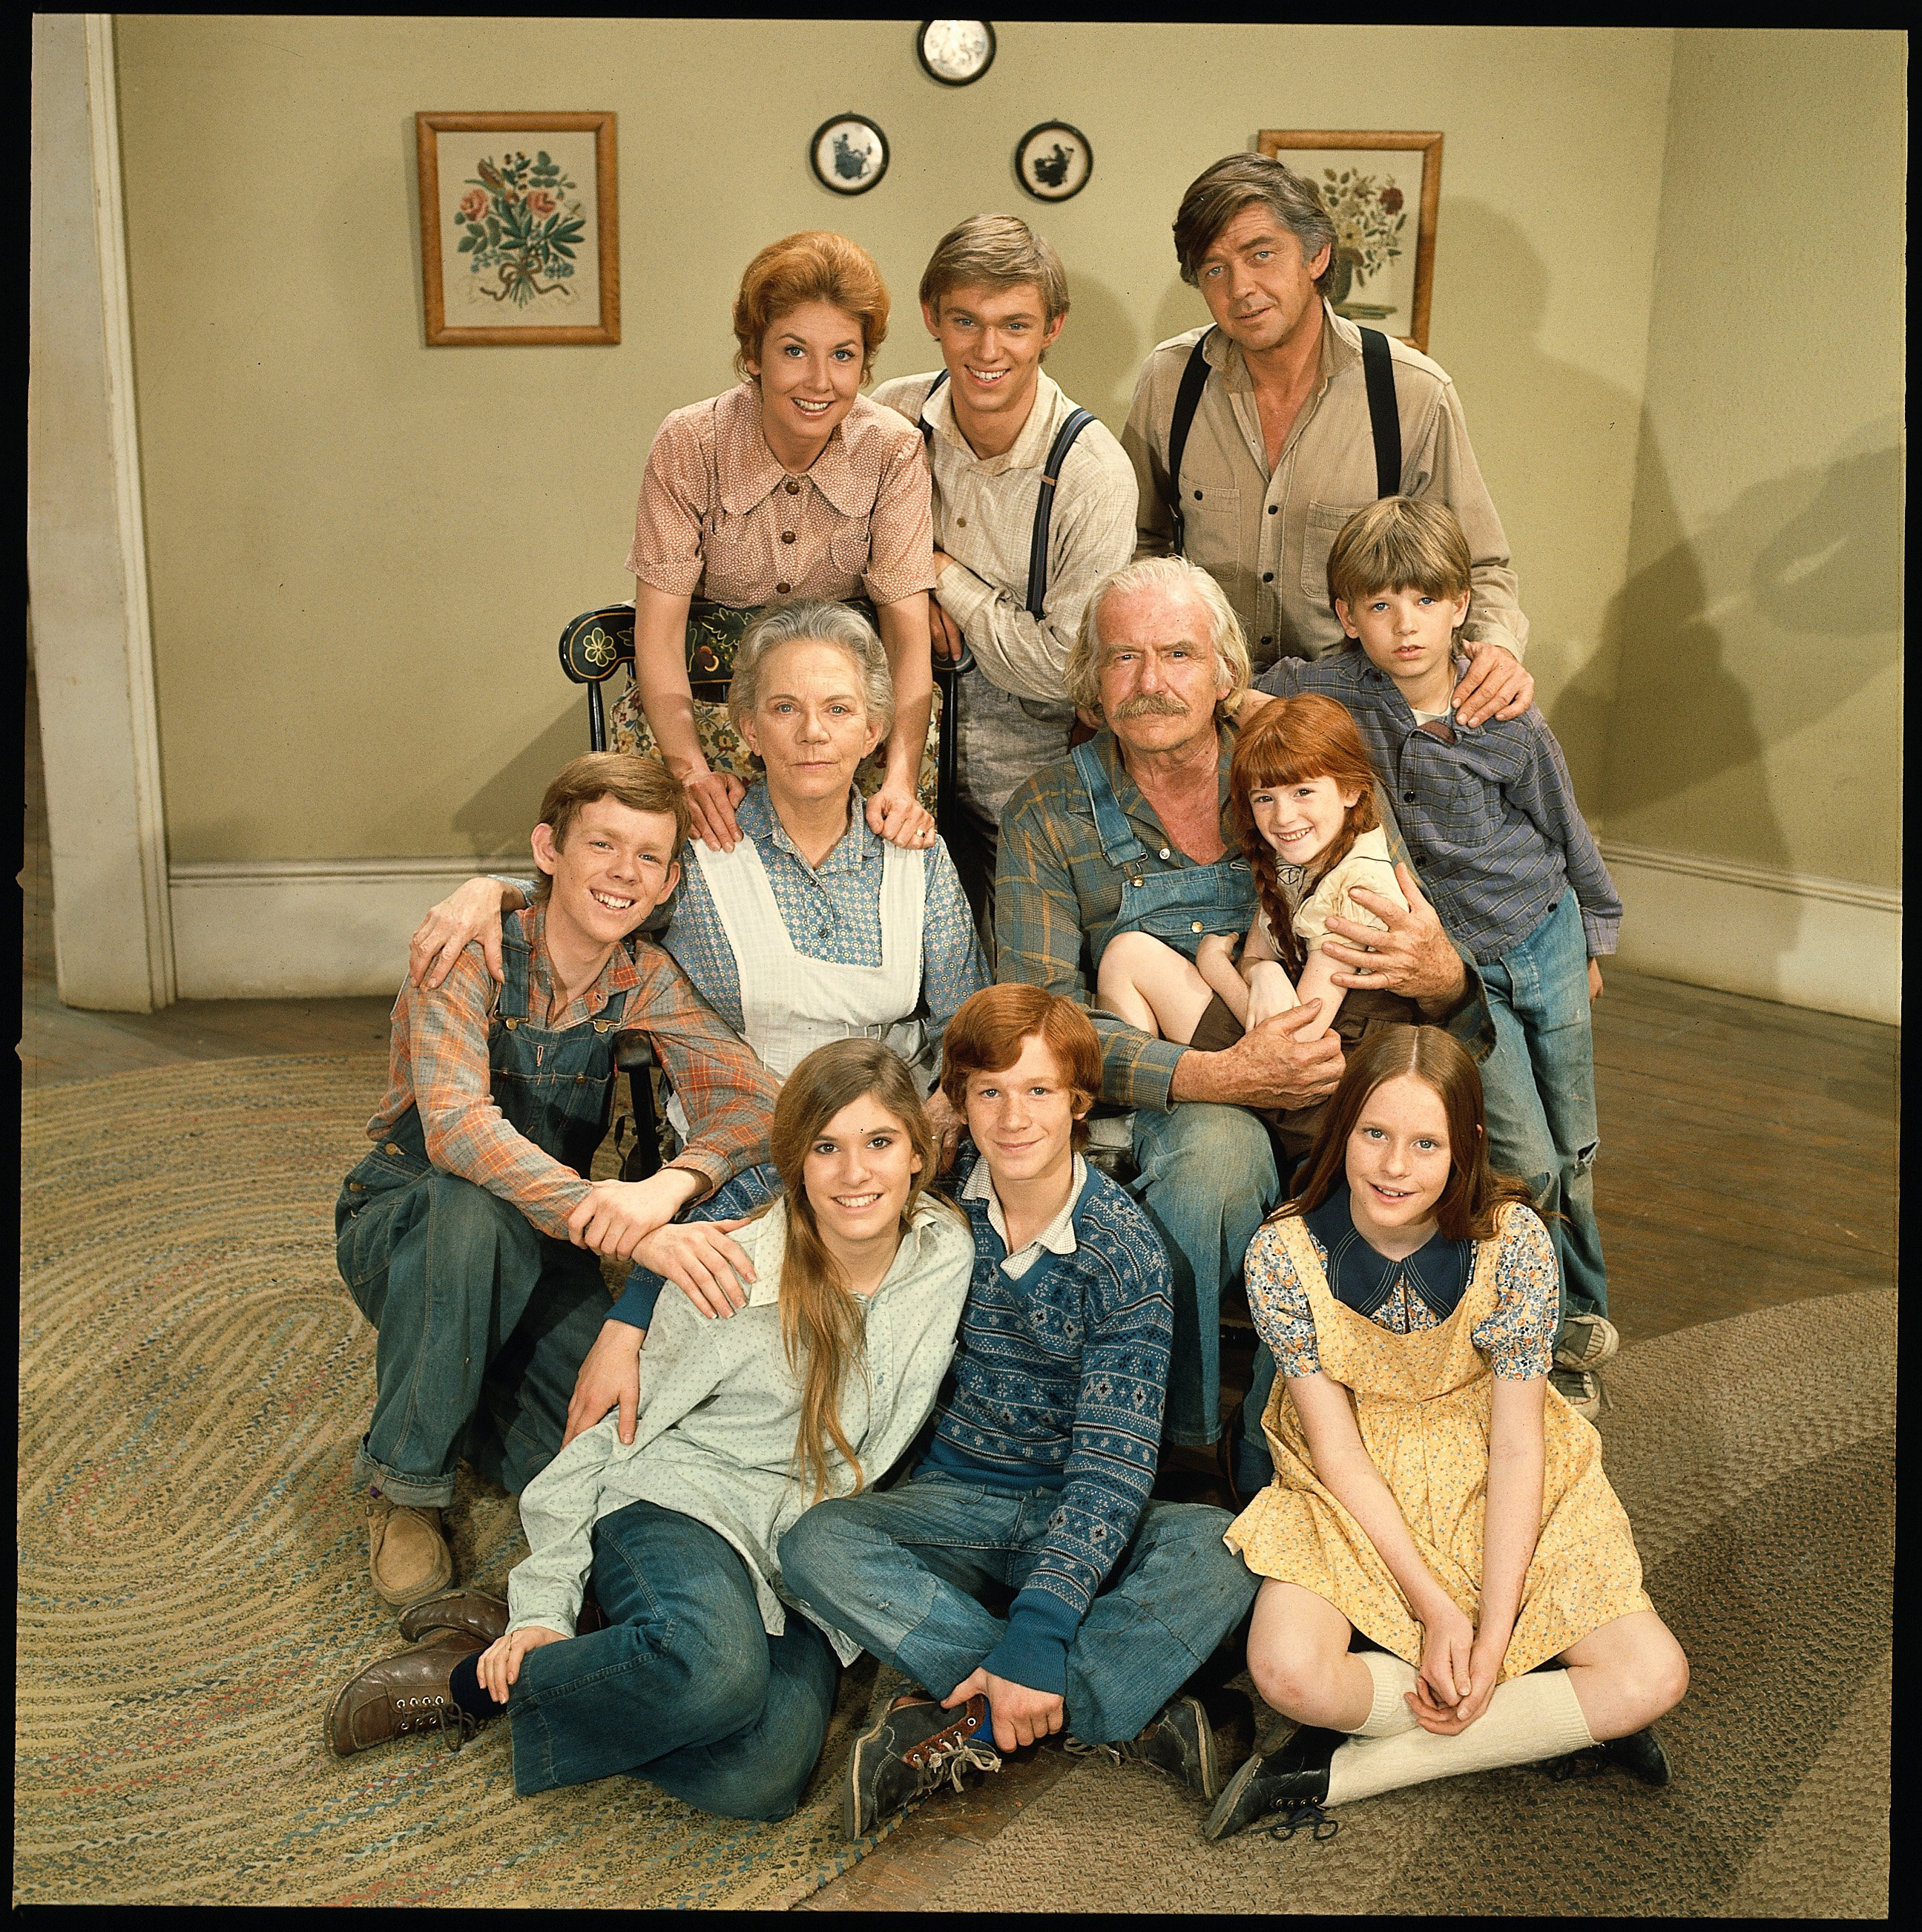 Image Credits: Getty Images / CBS | 'The Waltons''s cast poses for a promotional photo, 1972. L-R: (back row) Michael Learned, Richard Thomas and Ralph Waite; (center row) Jon Walmsley, Ellen Corby, Will Geer, Kami Cotler and David W. Harper; (bottom row) Judy Norton Taylor, Eric Scott and Elizabeth McDonough.